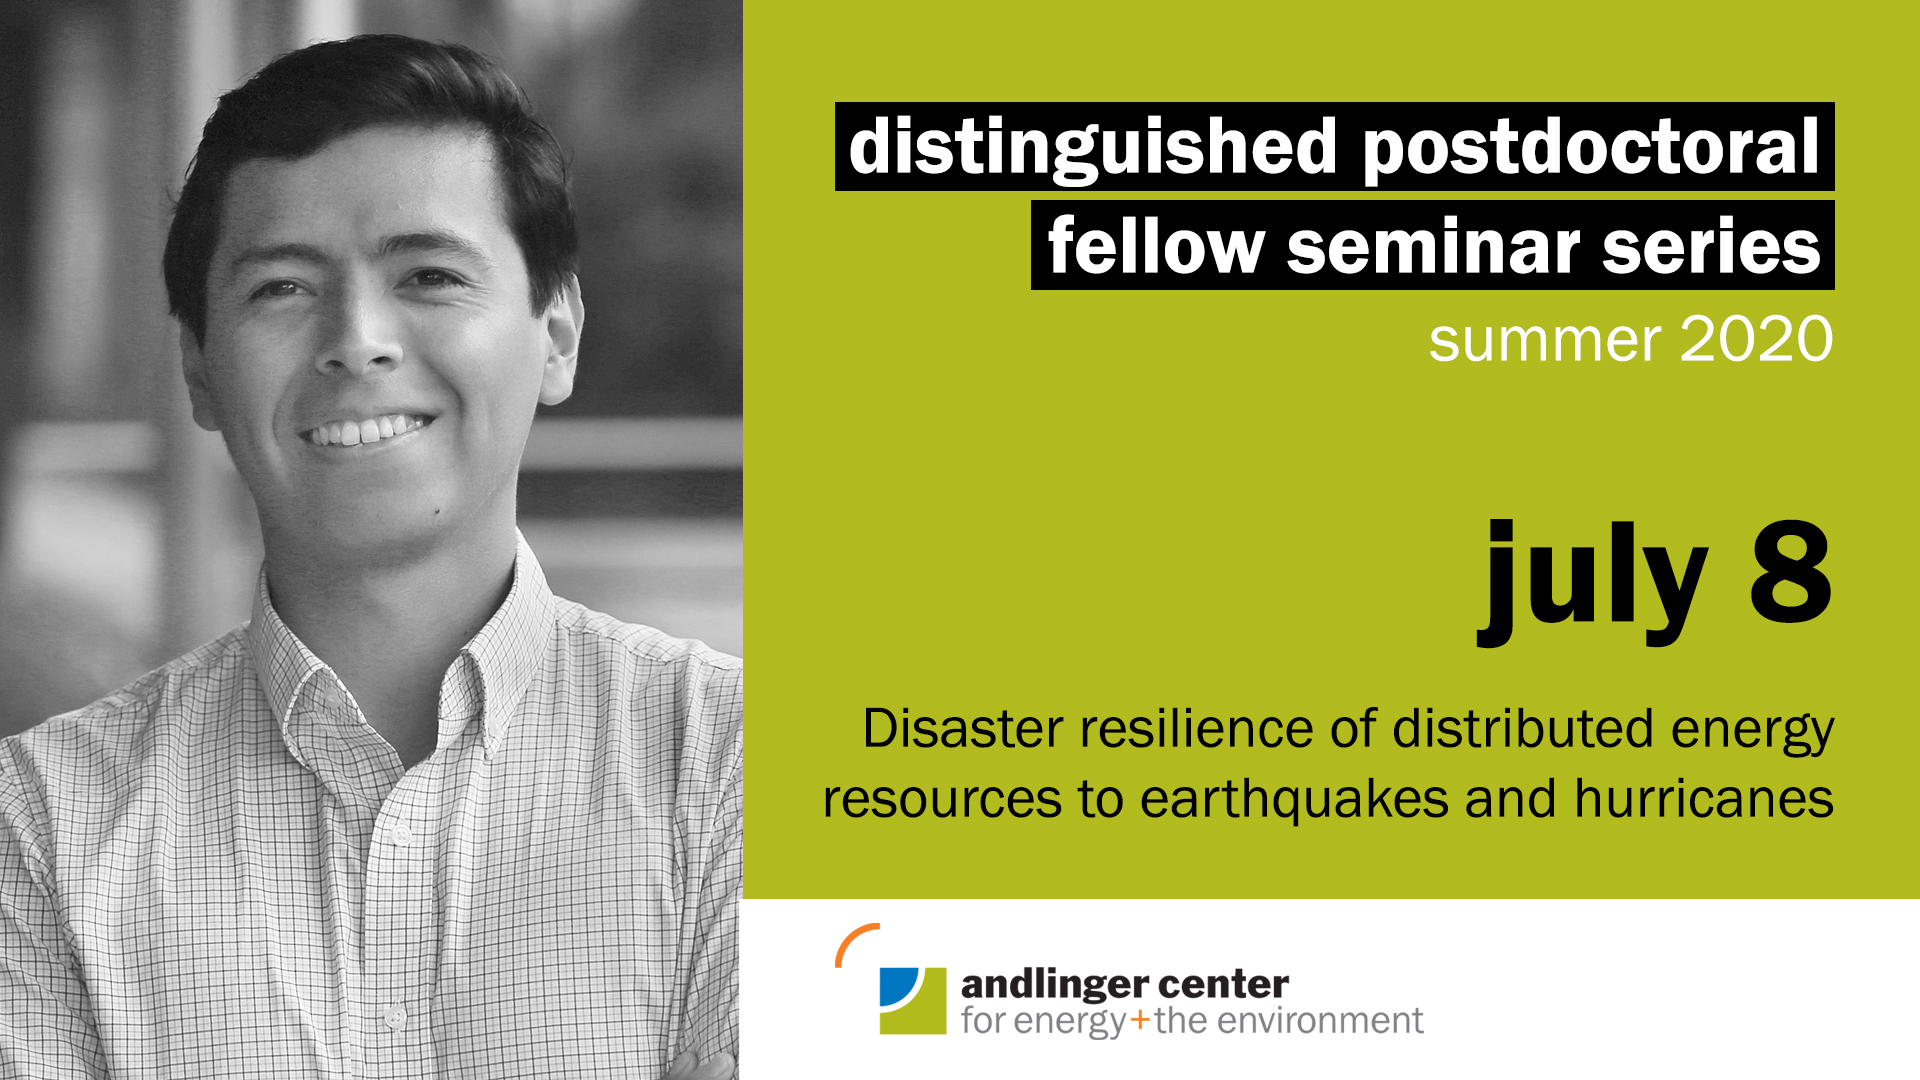 """July 8 at 4pm  Ceferino earned his doctoral degree in civil and environmental engineering at Stanford University where he studied the effects of large earthquakes on multiple urban systems including the power system. His thesis also focused on the policy implications for earthquake emergency planning and how to optimize the flow of patients, caregiving resources, and traffic during disaster responses.  At Princeton University, Ceferino works with Ning Lin, associate professor of civil and environmental engineering. Ceferino's work leverages Lin's expertise in hurricane and climate change modeling to model power systems during hurricanes, and provide solutions for more resilient infrastructure. Ceferino also works with researchers focusing on zero-carbon resources in the Andlinger Center.Twitter 